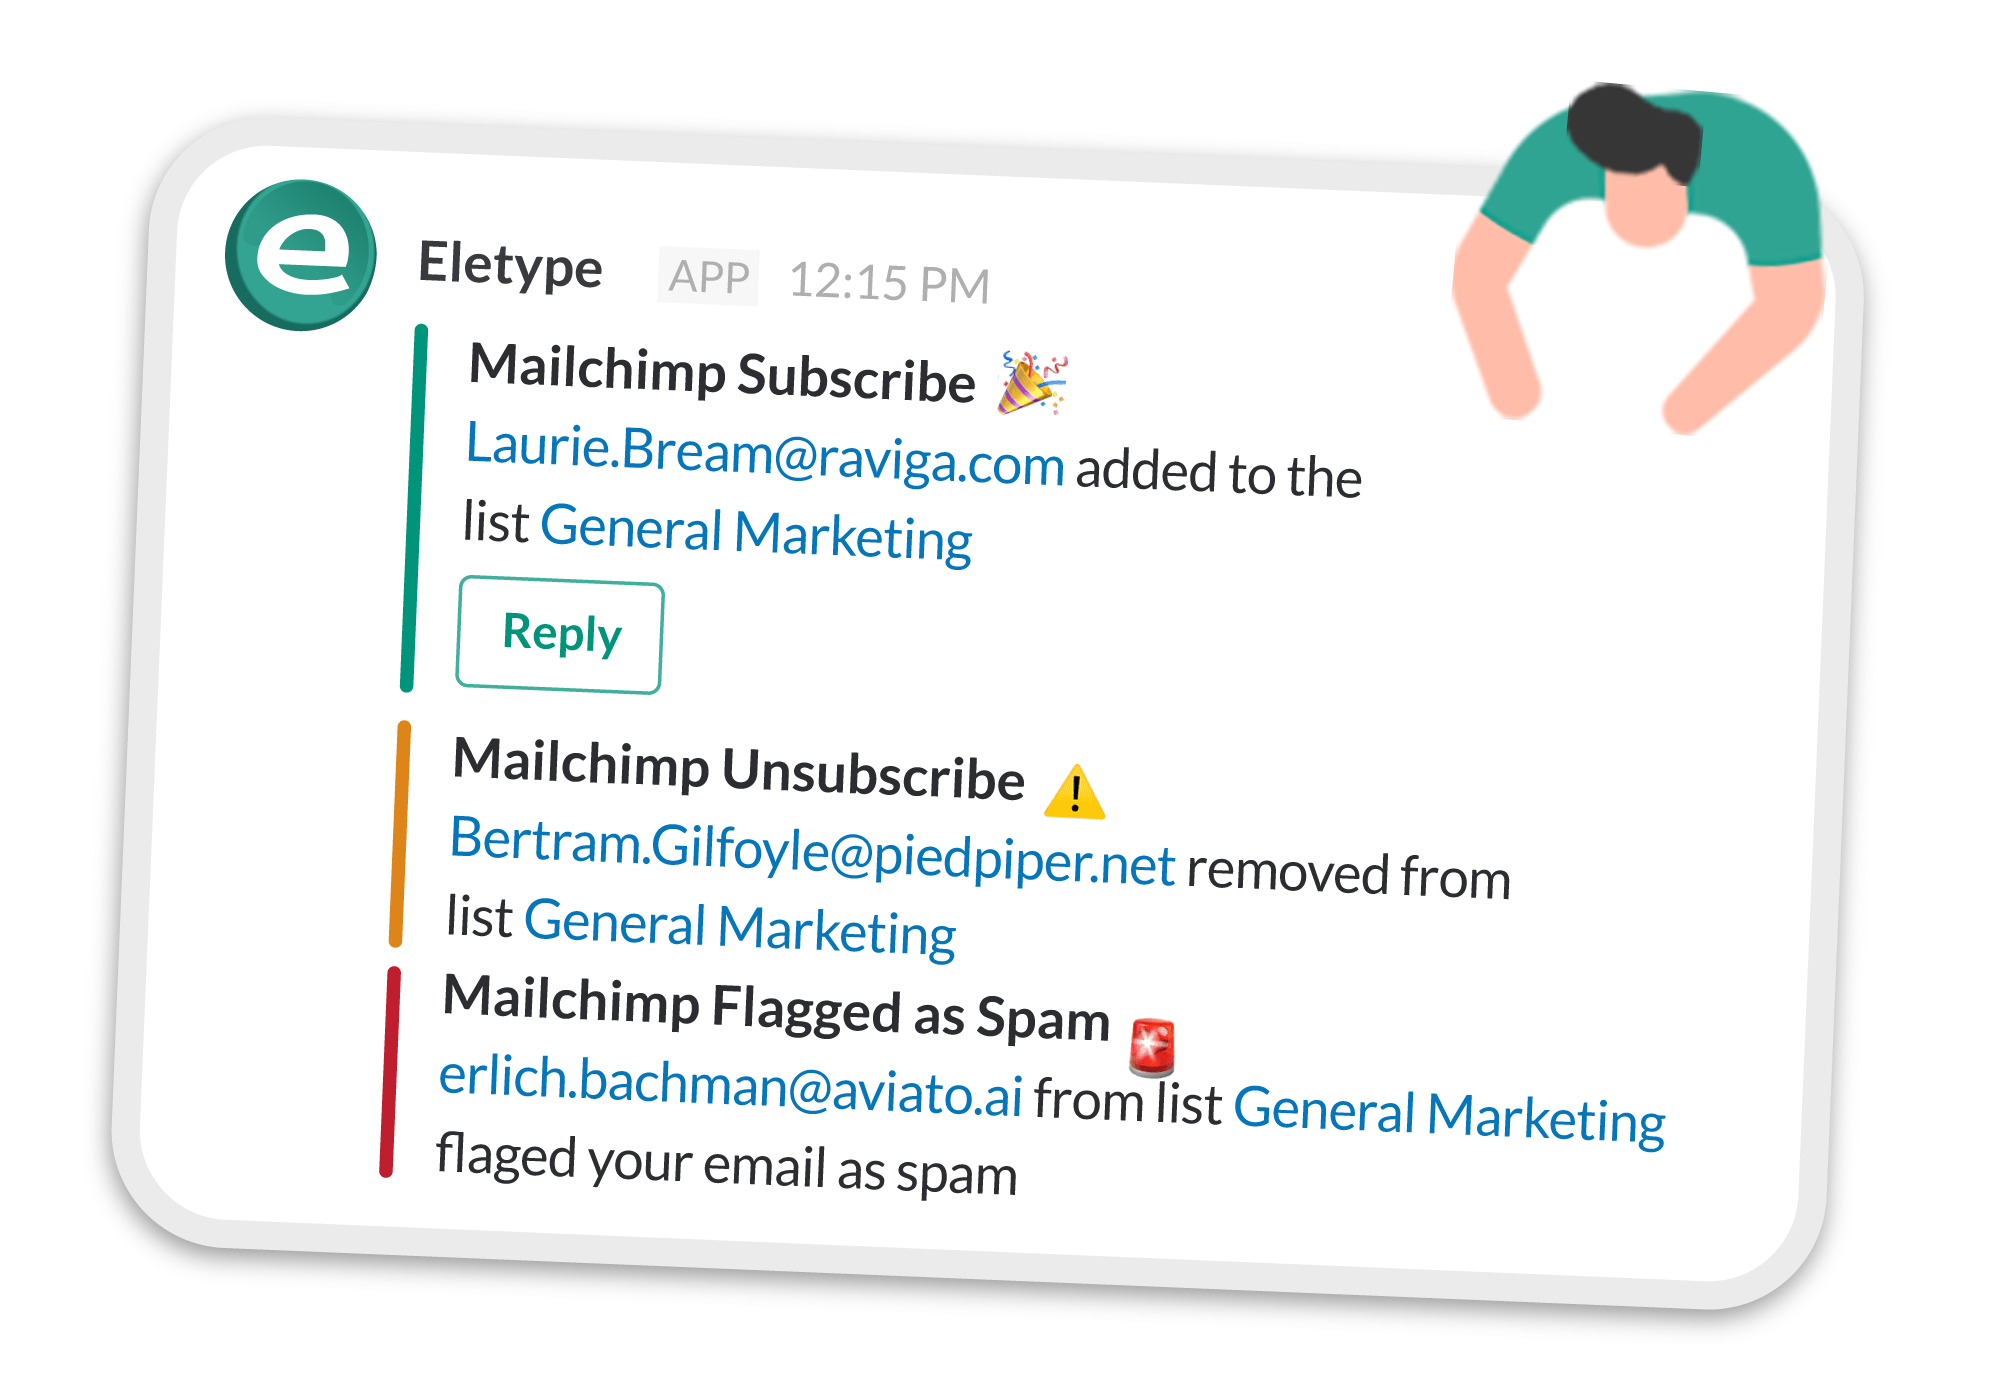 mailchimp realtime notifications in slack